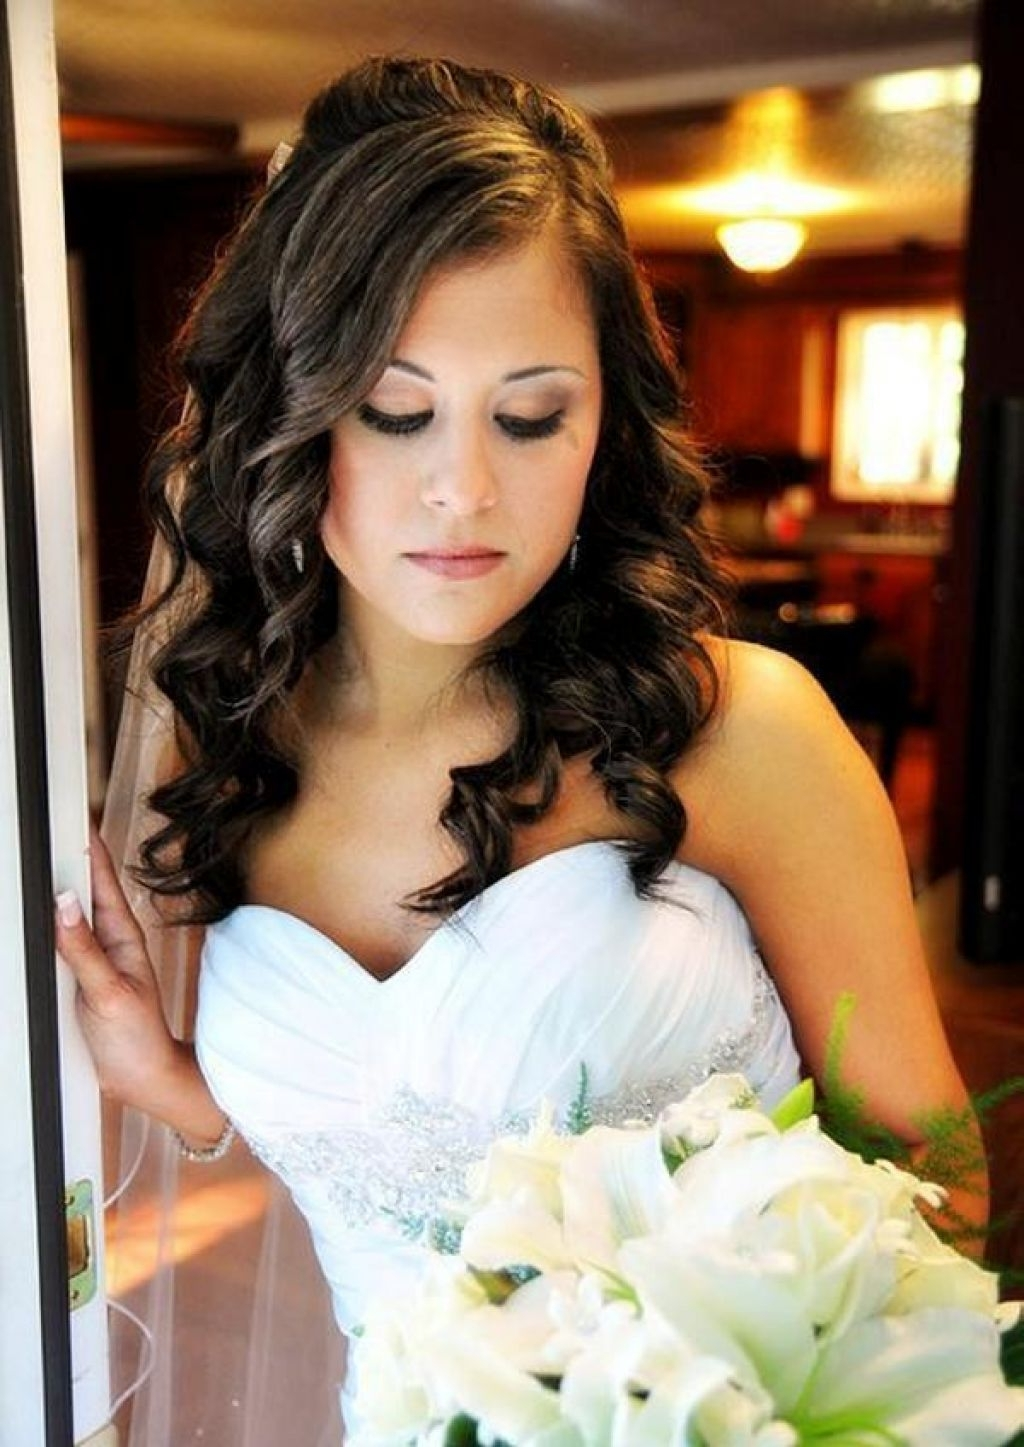 Most Current Wedding Hairstyles For Long Hair With Round Face Regarding Prom And Wedding Hairstyles For Long Hair – Popular Long Hairstyle Idea (View 8 of 15)